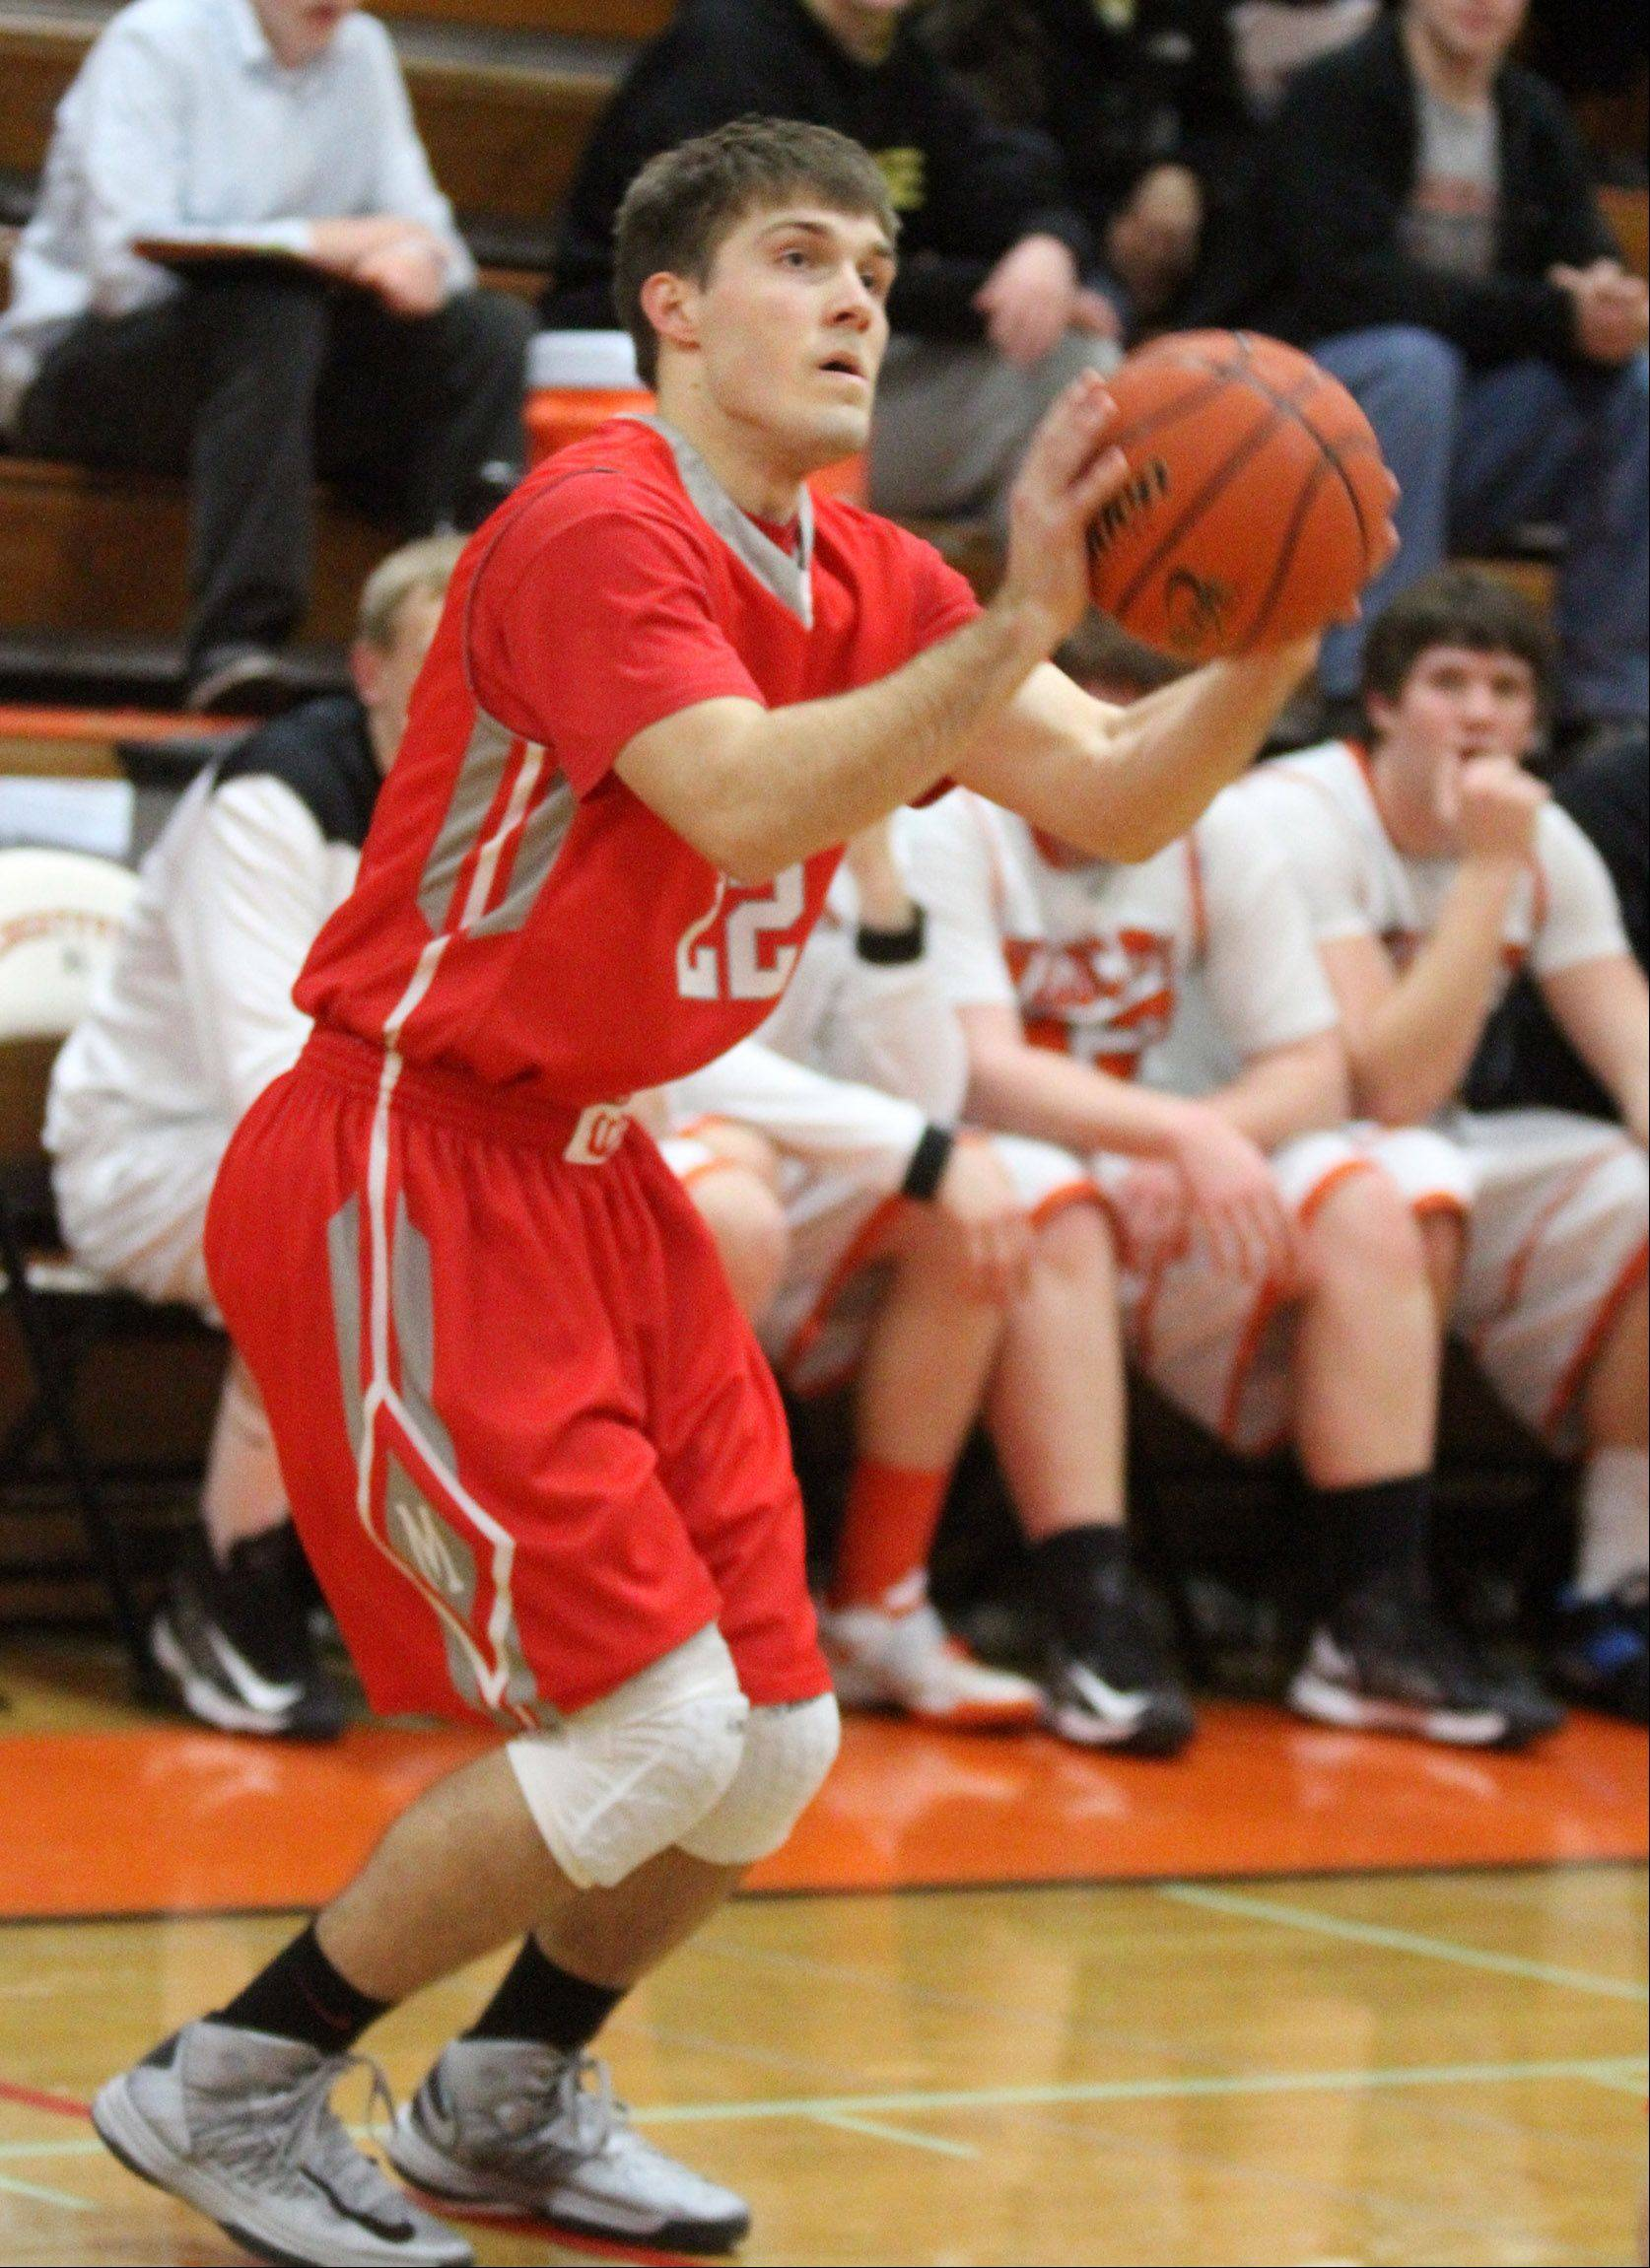 Mundelein guard Robert Knar shoots against Libertyville in the first half at Libertyville on Friday.